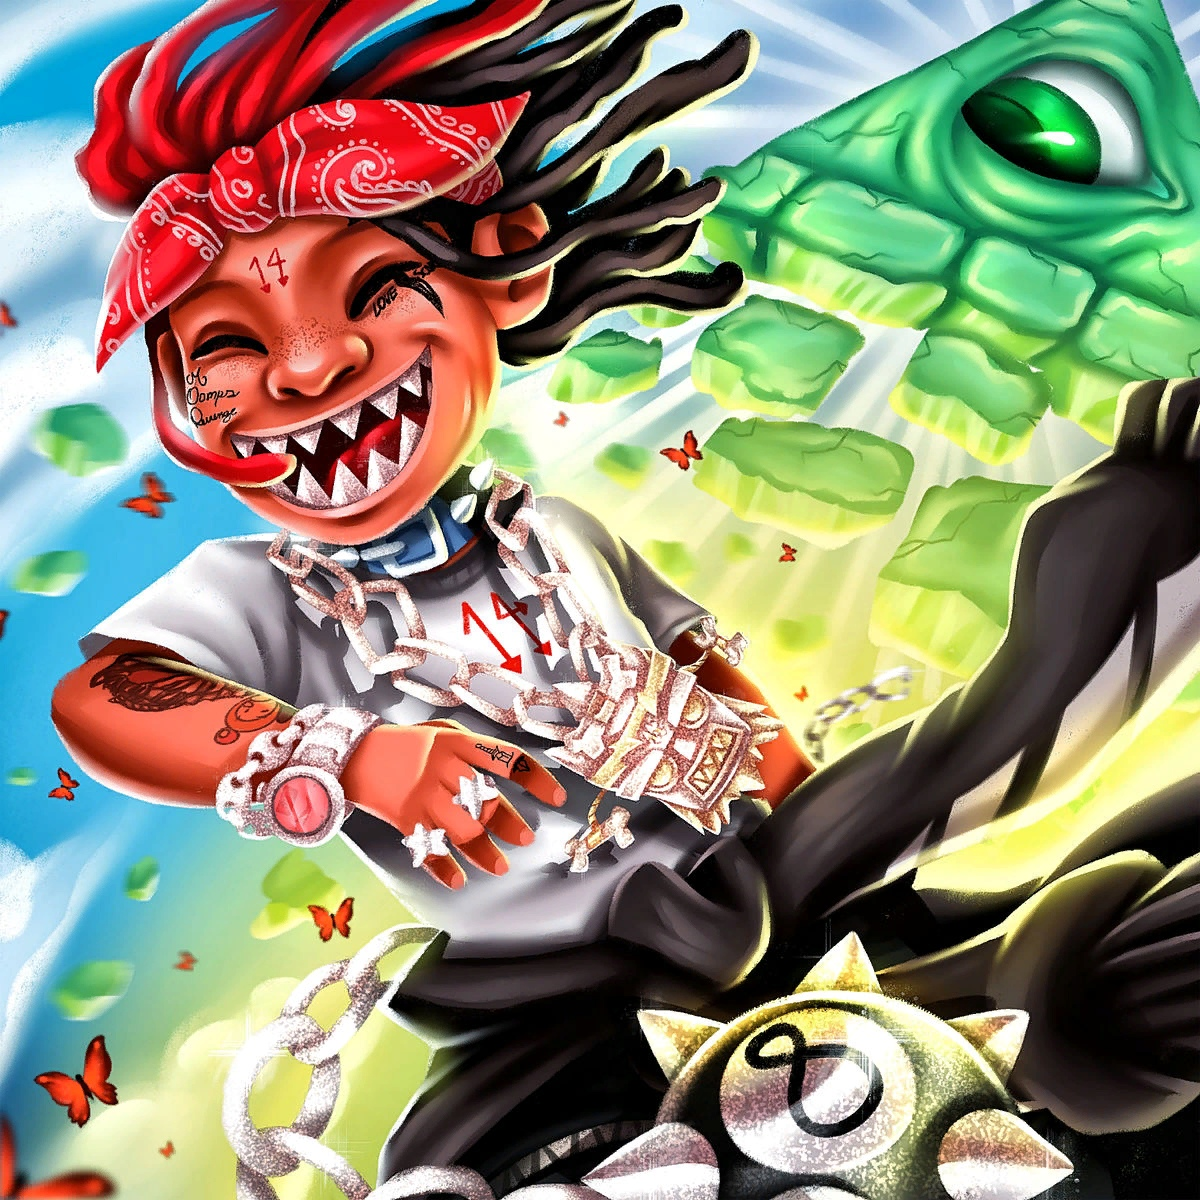 Trippie Redd – A Love Letter To You 3